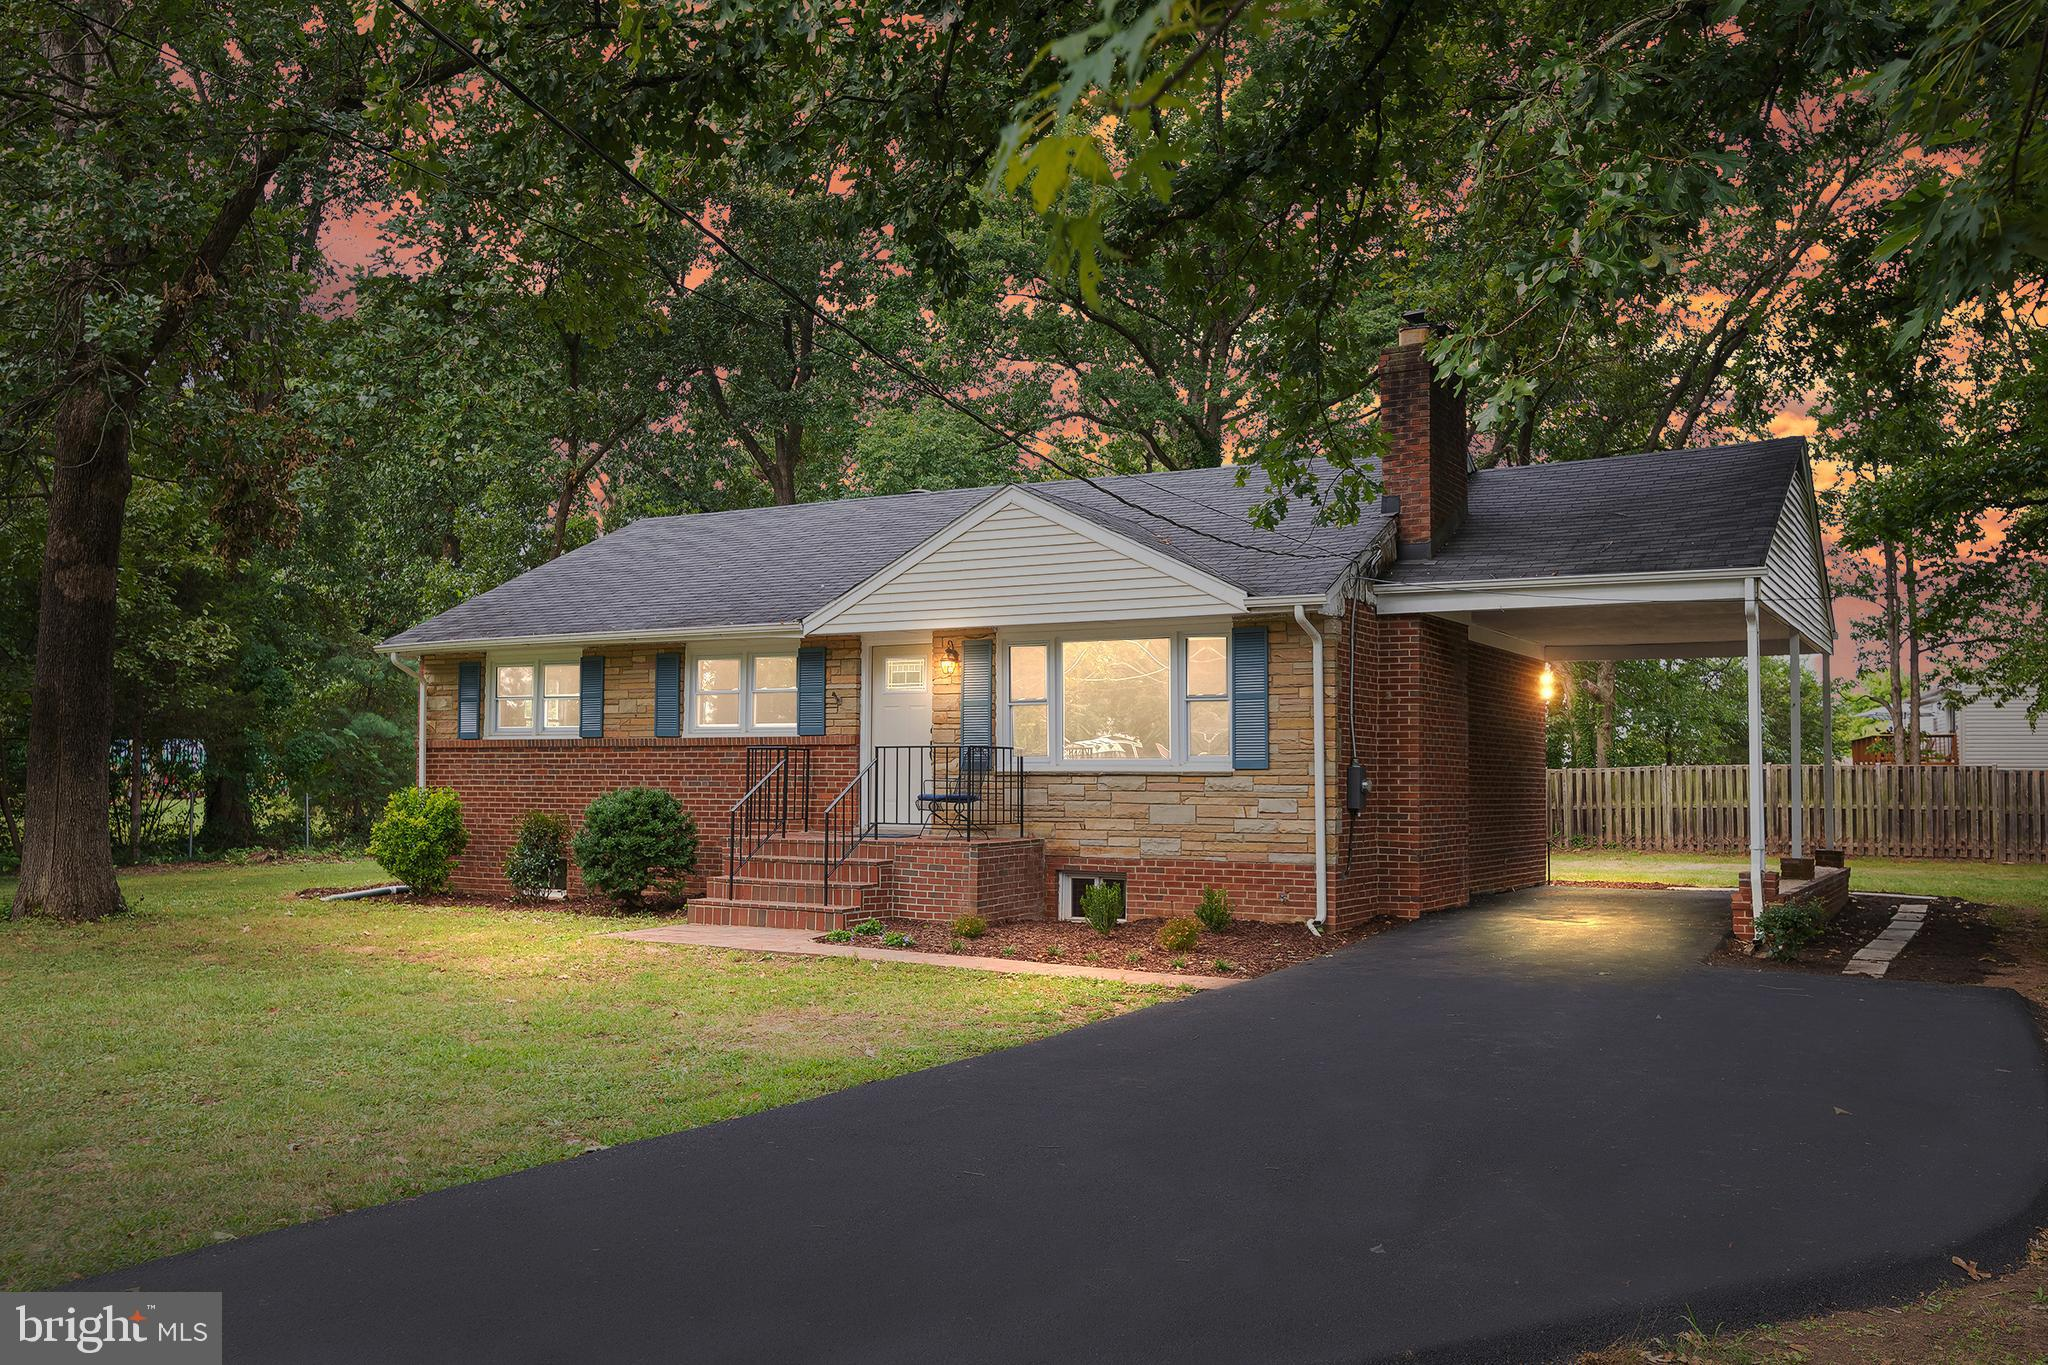 A MUST SEE! TURN KEY! CHARMING 4BR LOCATED ON A HALF ACRE IN THE PRIVATE BEVERLY FOREST NEIGHBORHOOD! LOCATED A HALF-MILE FROM METRO STATION / FAIRFAX PARKWAY / I95! SHORT METRO RIDE TO AMAZON HQ2! MINUTES AWAY FROM NGA HQ AND FUTURE TSA HQ! NEW KITCHEN! NEW BATHROOMS! NEW / REFINISHED FLOORS! NEW EVERYTHING! NO HOA! CORNER LOT WITH LARGE YARD FOR OUTDOOR ACTIVITIES! BEAUTIFULLY REFINISHED LIVING ROOM WITH A FUNCTIONAL FIREPLACE! BRAND NEW KITCHEN WITH NEW SS APPLIANCES! GAS STOVE! OPEN CONCEPT FROM KITCHEN / DINING! MAIN LEVEL MASTER! BACK DECK FOR ENTERTAINING / GRILLING! STORAGE SHED! YOUR OWN EXERCISE / FLEX ROOM! MEDIA ROOM! OVERSIZED NTC BEDROOM! WALK-UP! YOU DO NOT WANT TO MISS OUT ON THIS RARE OPPORTUNITY TO OWN A QUIET PROPERTY IN DESIRABLE FAIRFAX COUNTY!